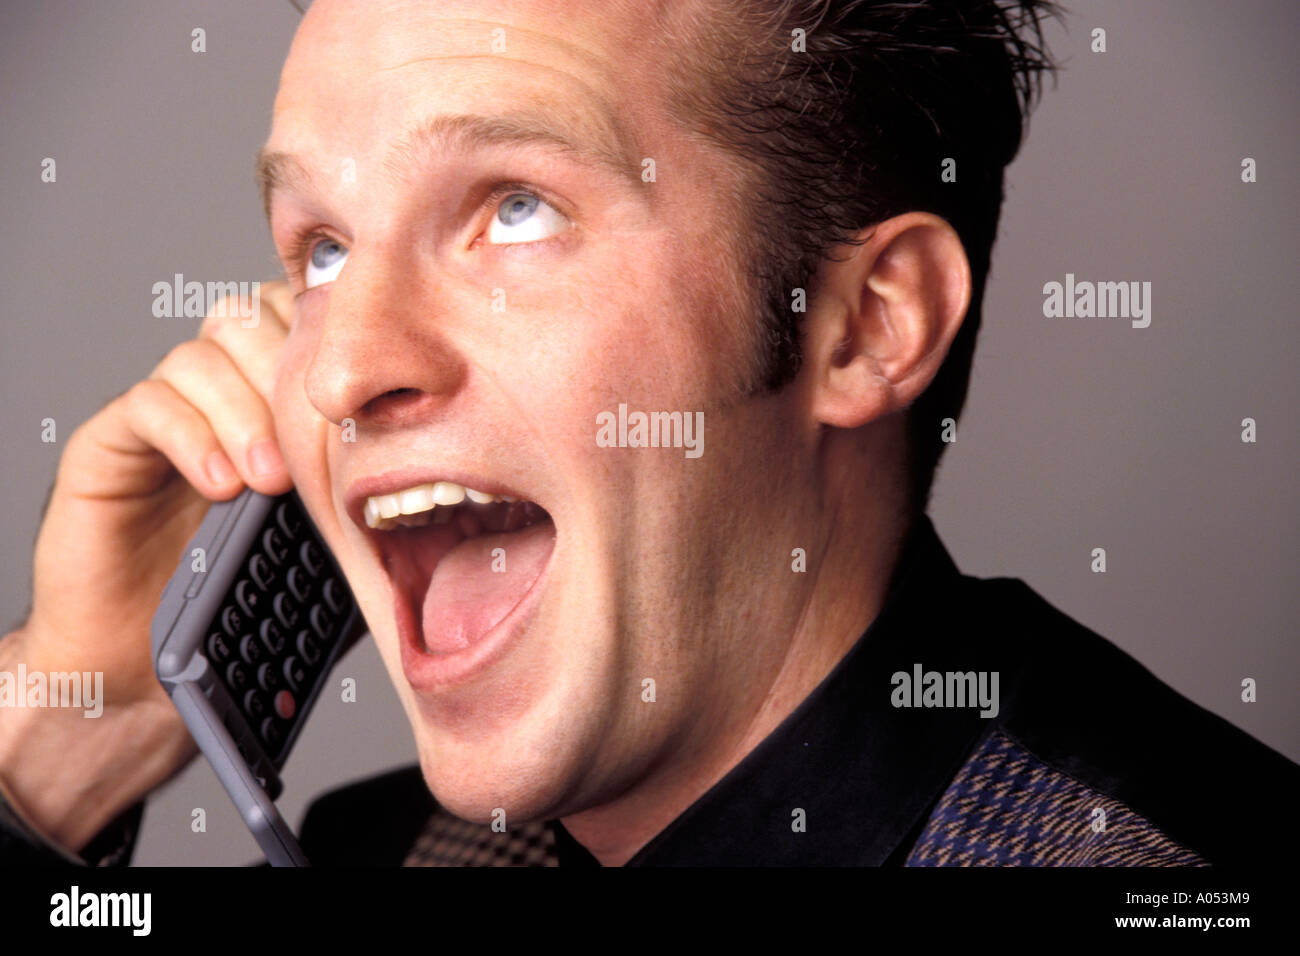 man having a conversation on the phone talking about exciting news that is shocking - Stock Image